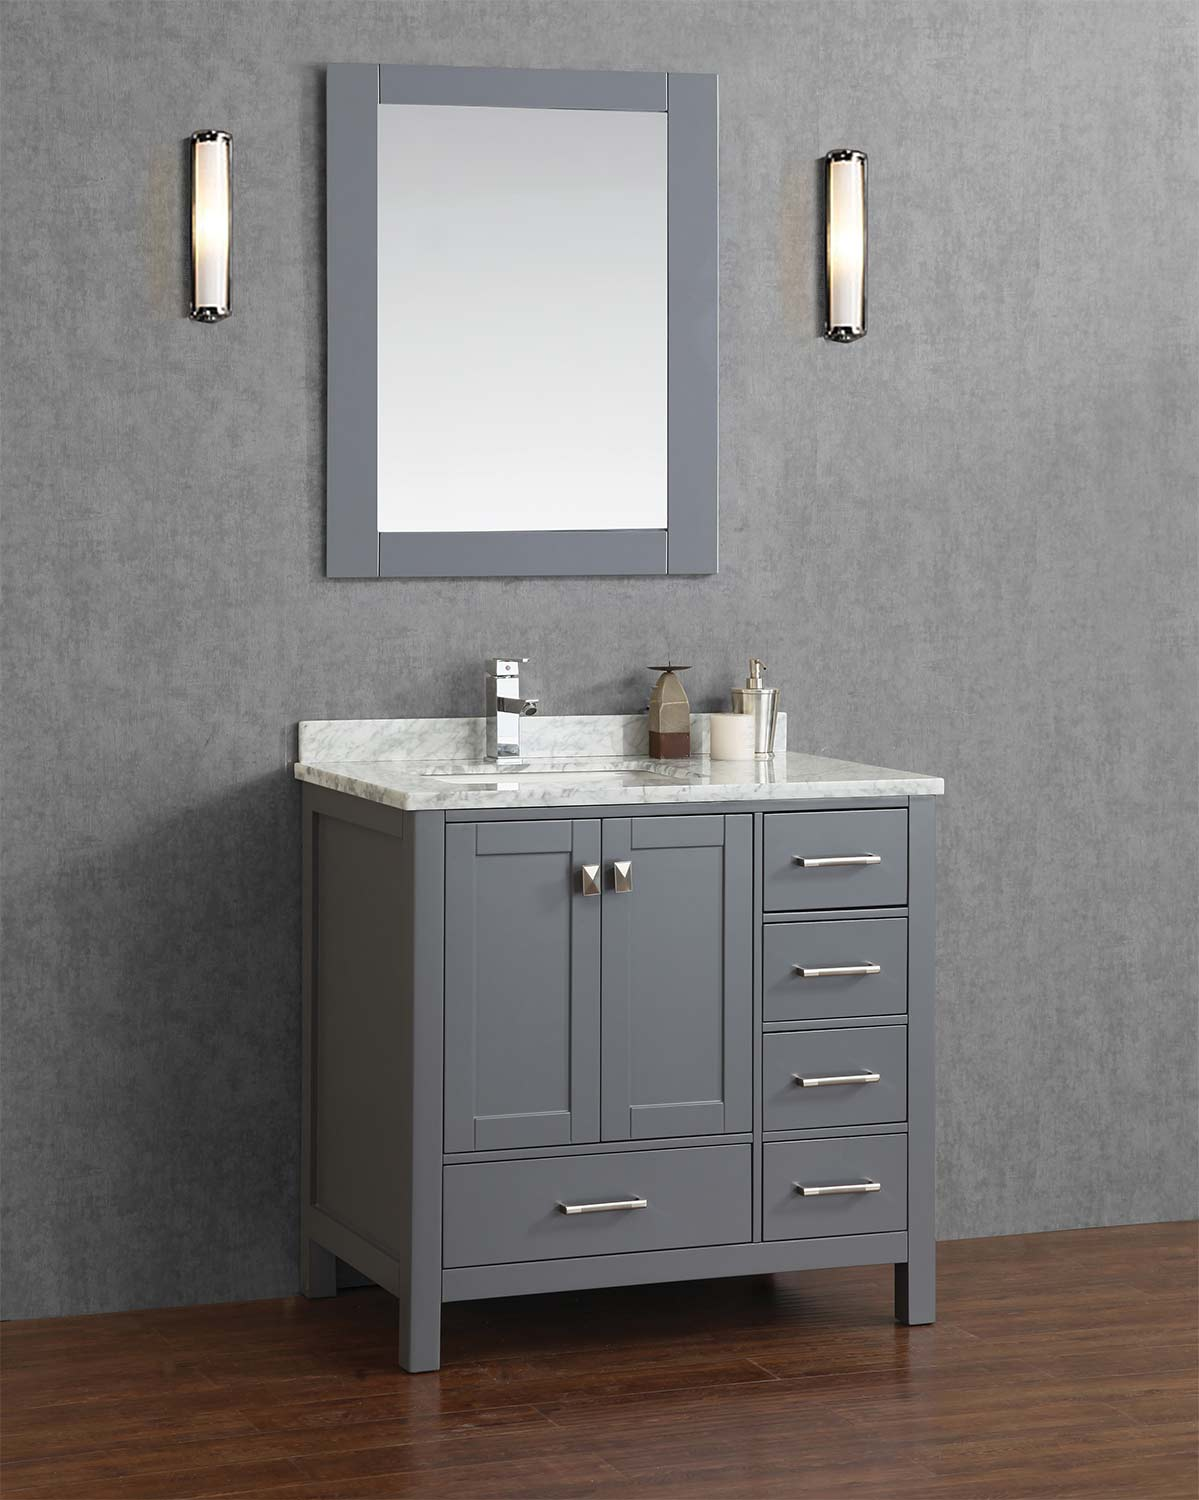 bathroom vanity grey. Vincent 36  Solid Wood Single Bathroom Vanity in Charcoal Grey HM 13001 WMSQ CG Buy Inch